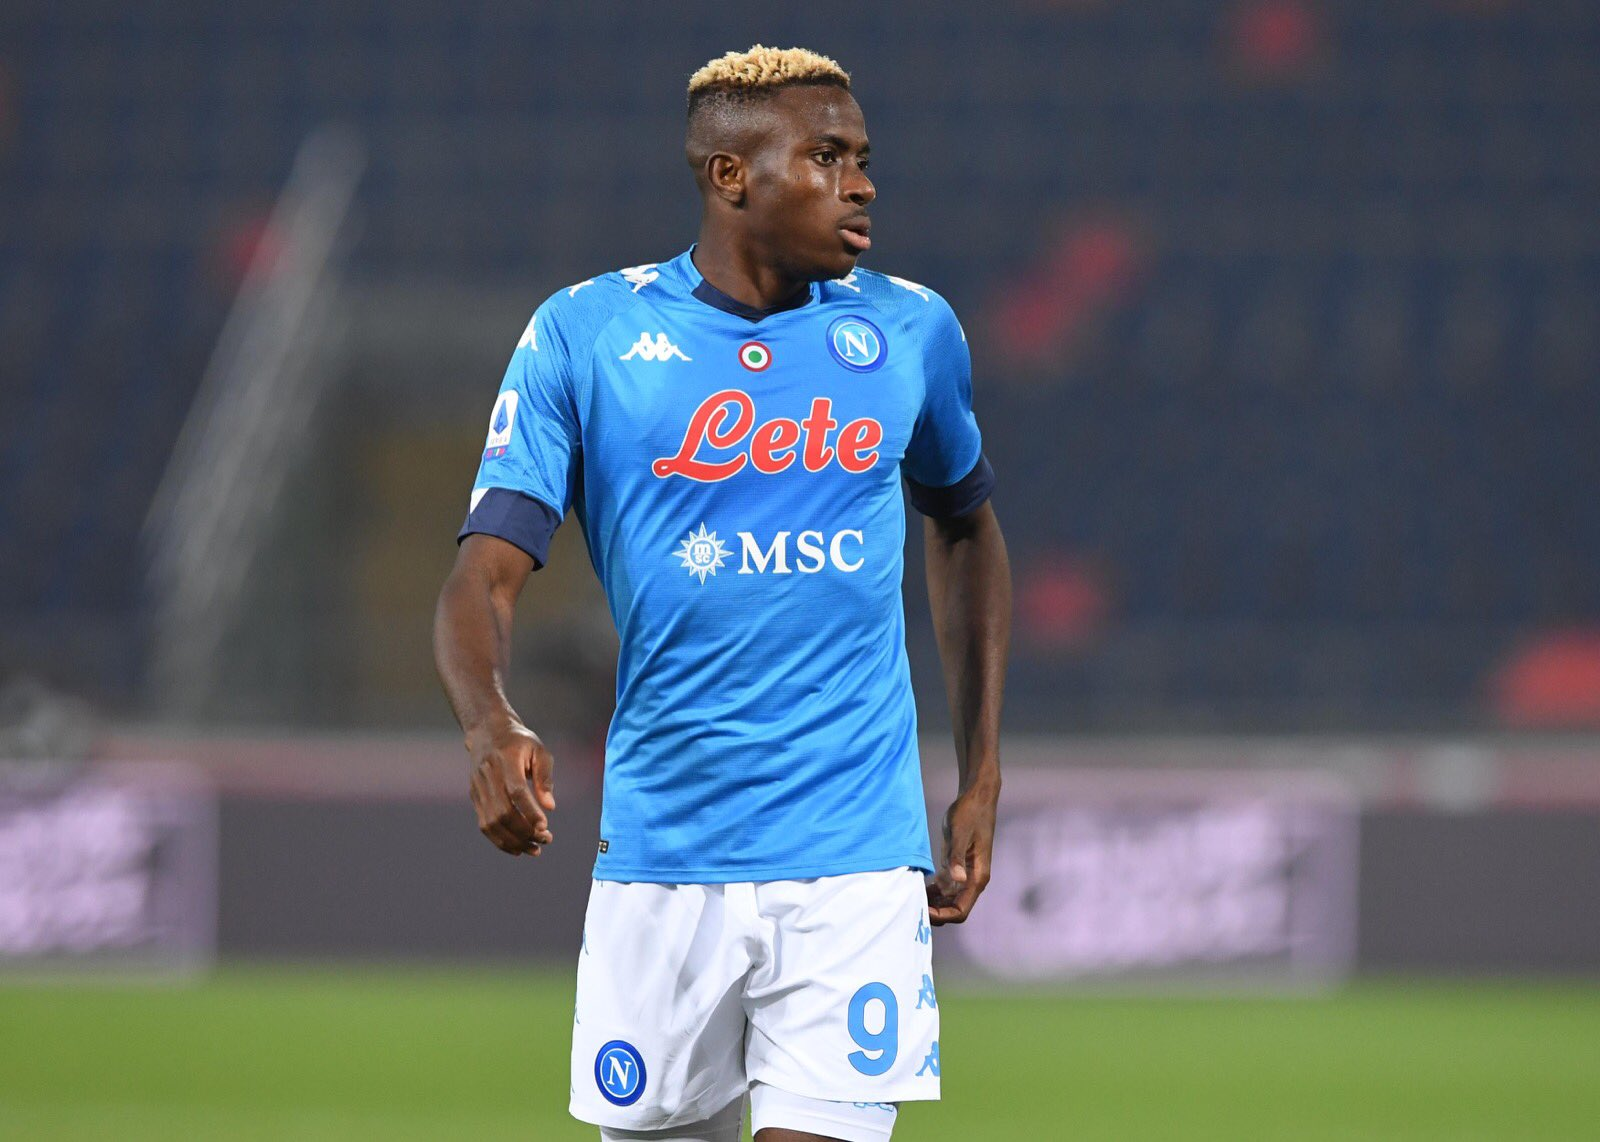 'He Is An Important Player'-Gattuso Rues Osimhen  Absence In Napoli's  Big Win Vs Roma